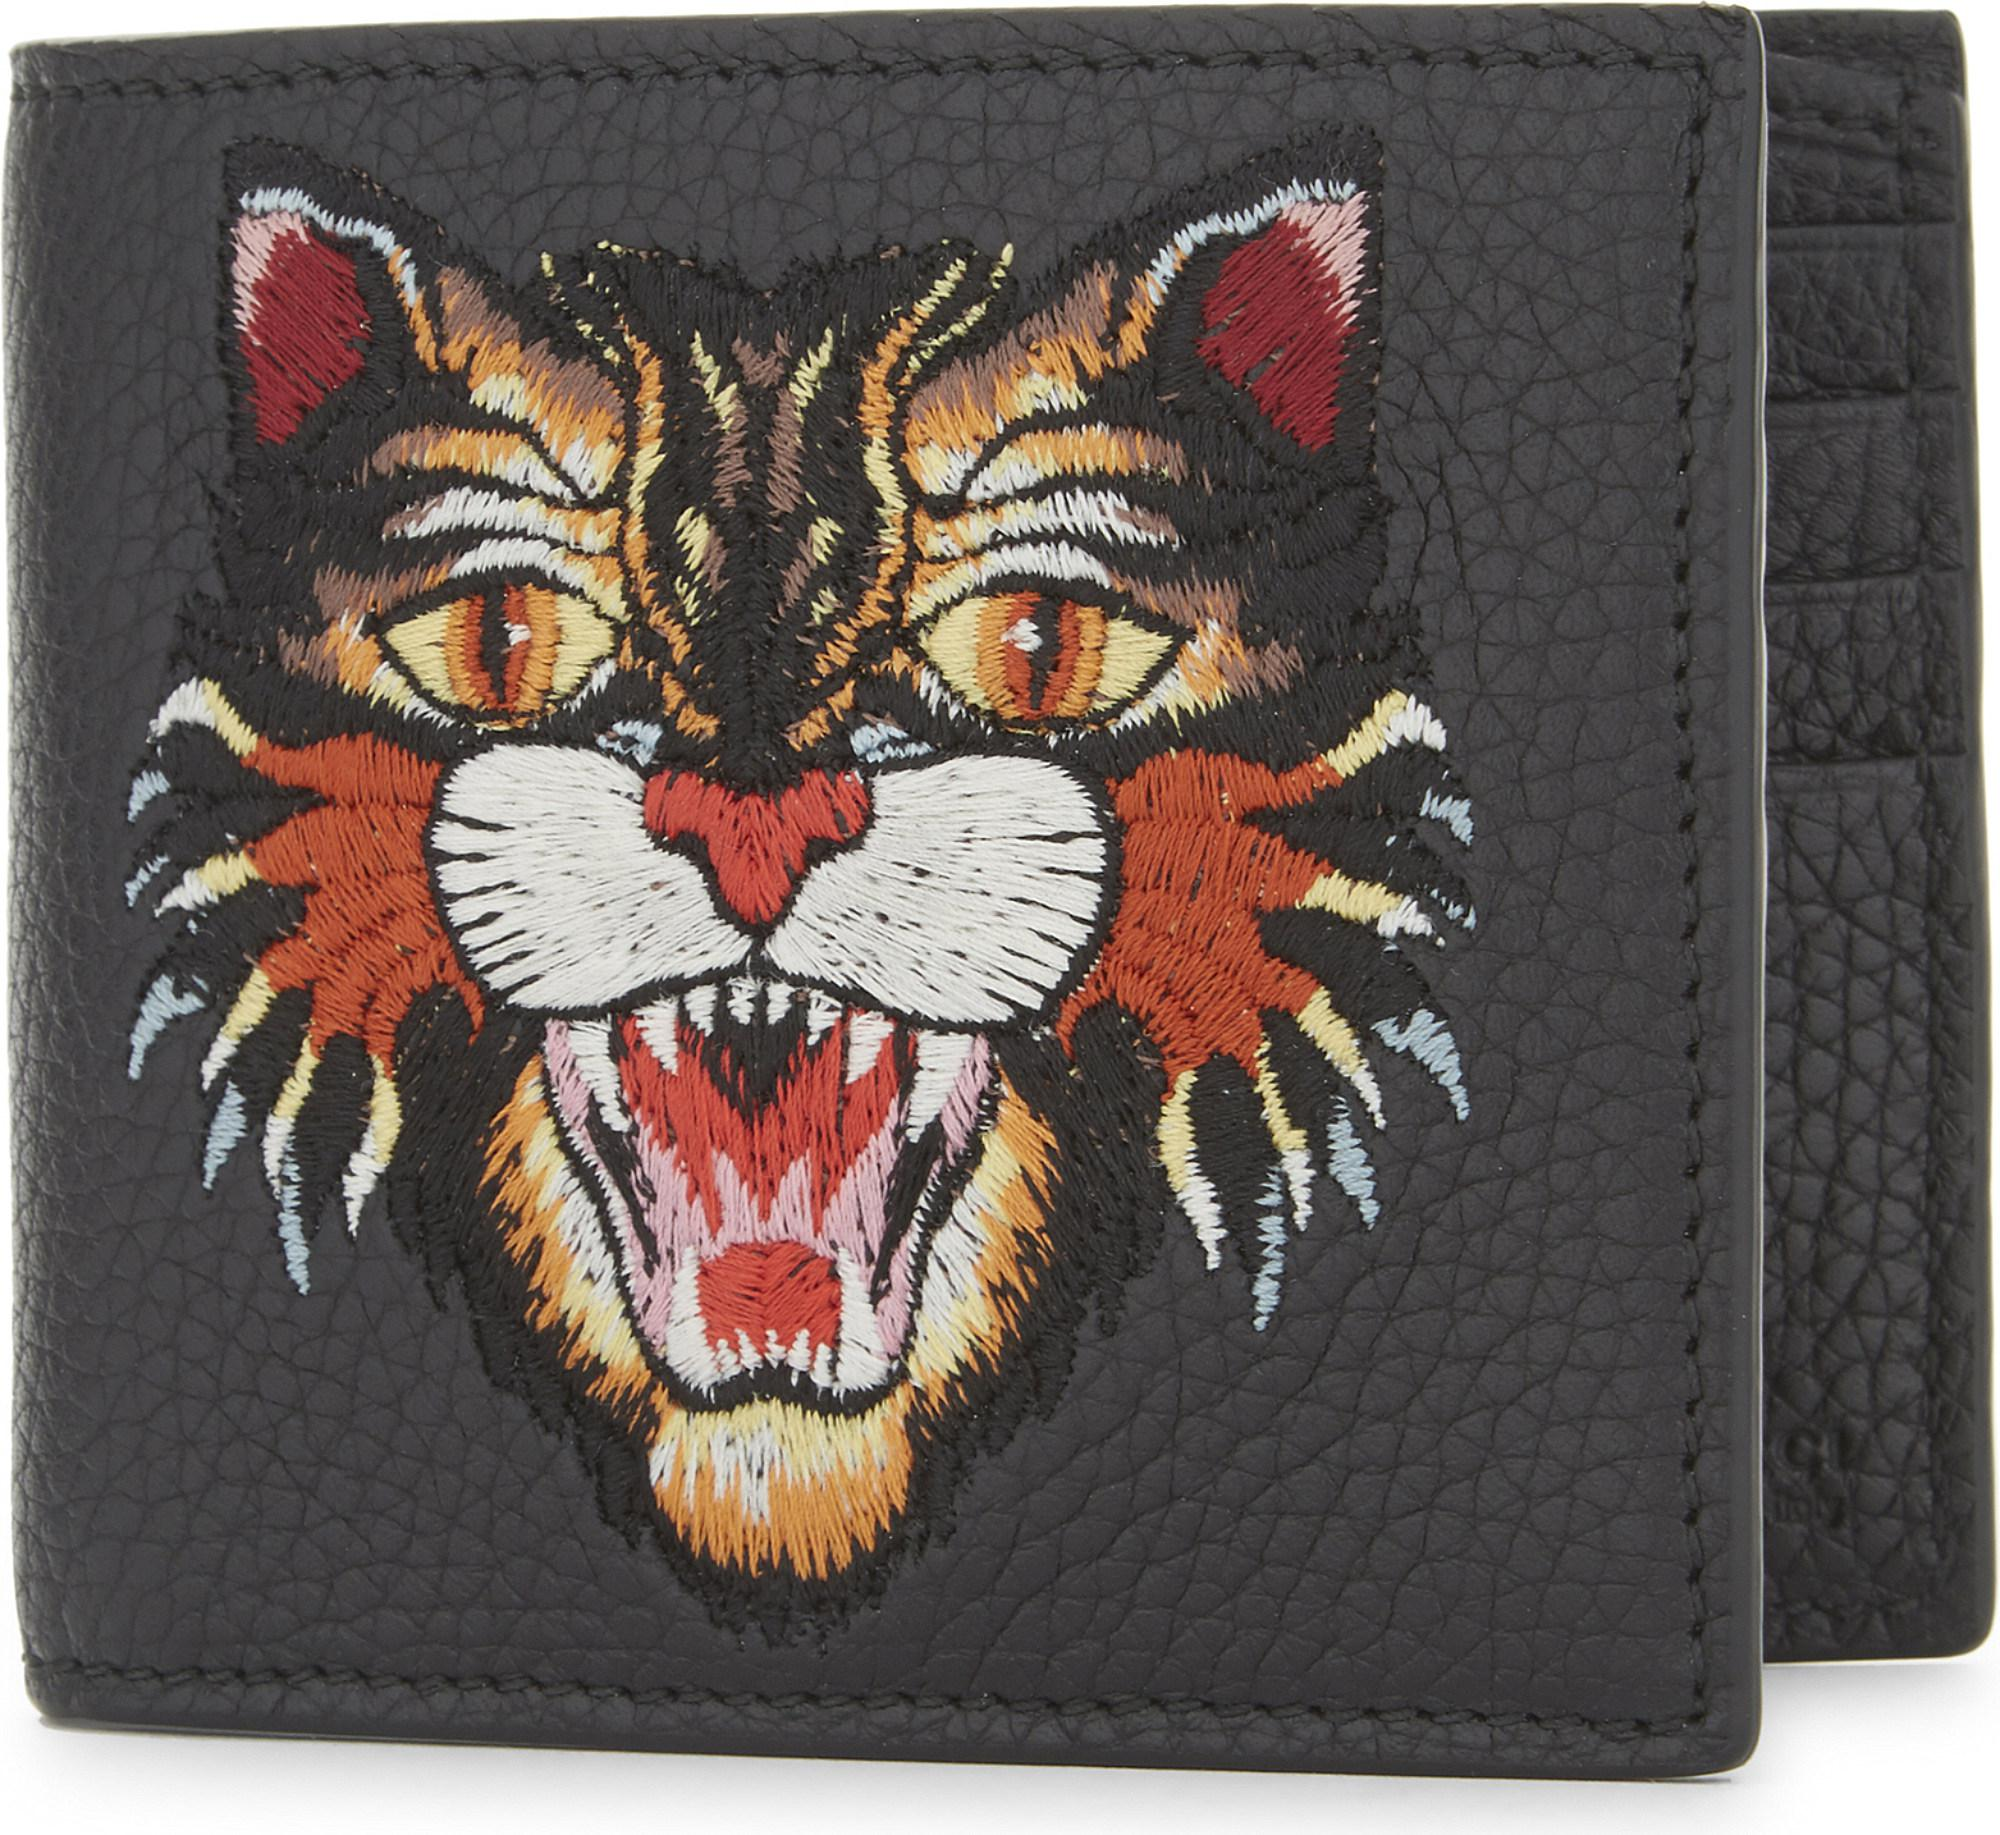 dfdb73421136 Gucci Rev D'orient Tiger Embroidered Leather Billfold Wallet in ...